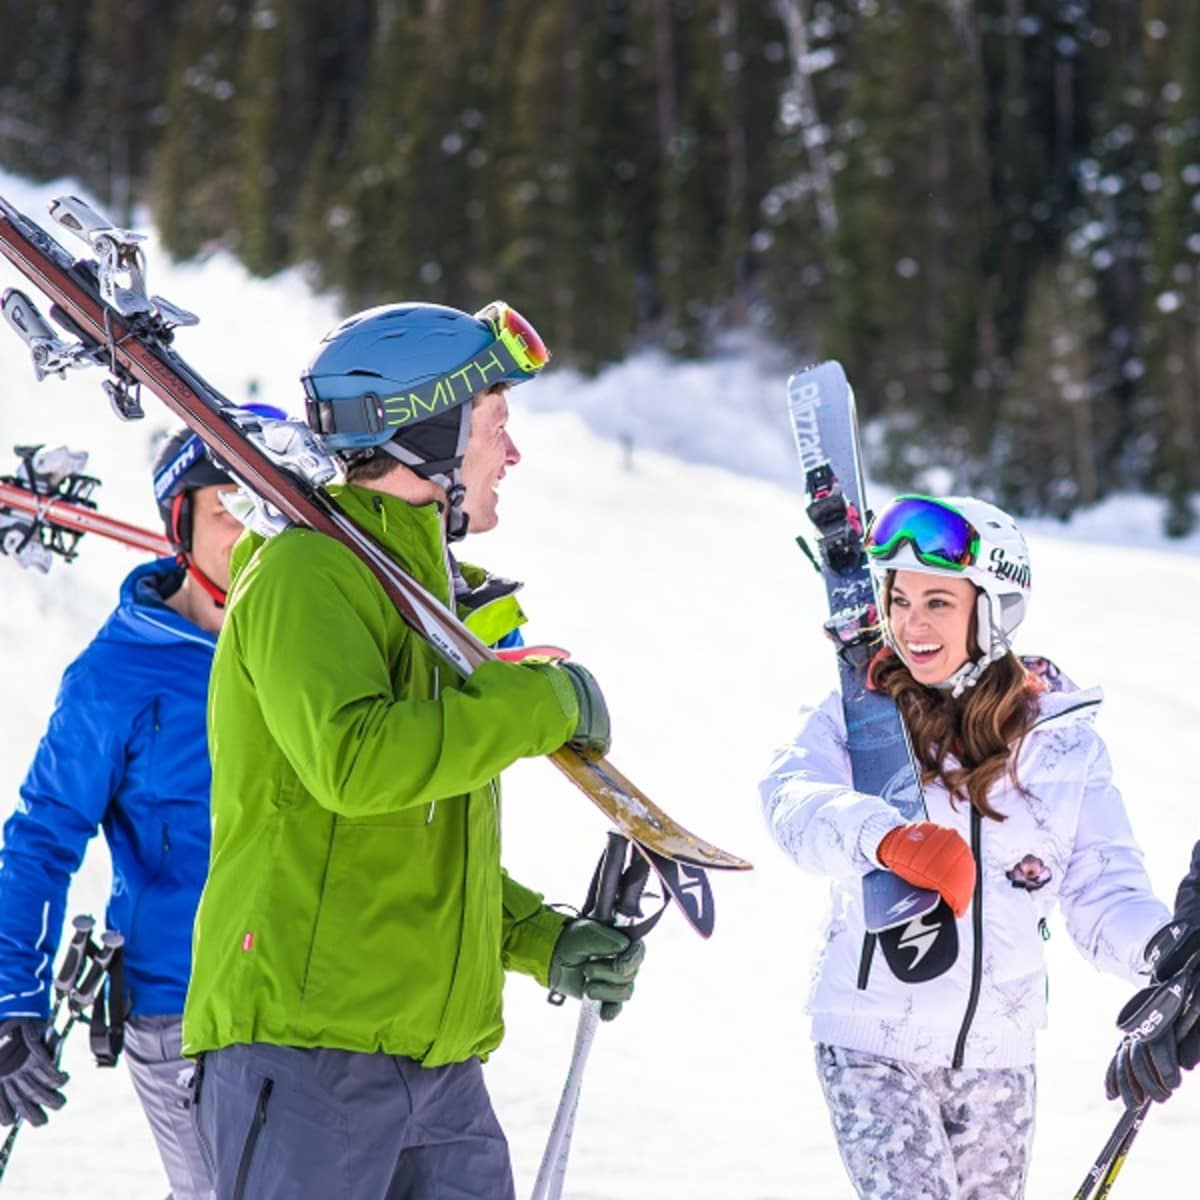 SKI WITH A FRIEND TICKETS - As a valued pass holder, you get six Ski-With-A-Friend (SWAF) varying discount tickets loaded onto your pass for friends and family. These tickets are automatically loaded onto your Season Pass. Click 'Learn More' to check the updated SWAF pricing for the remainder of the season.